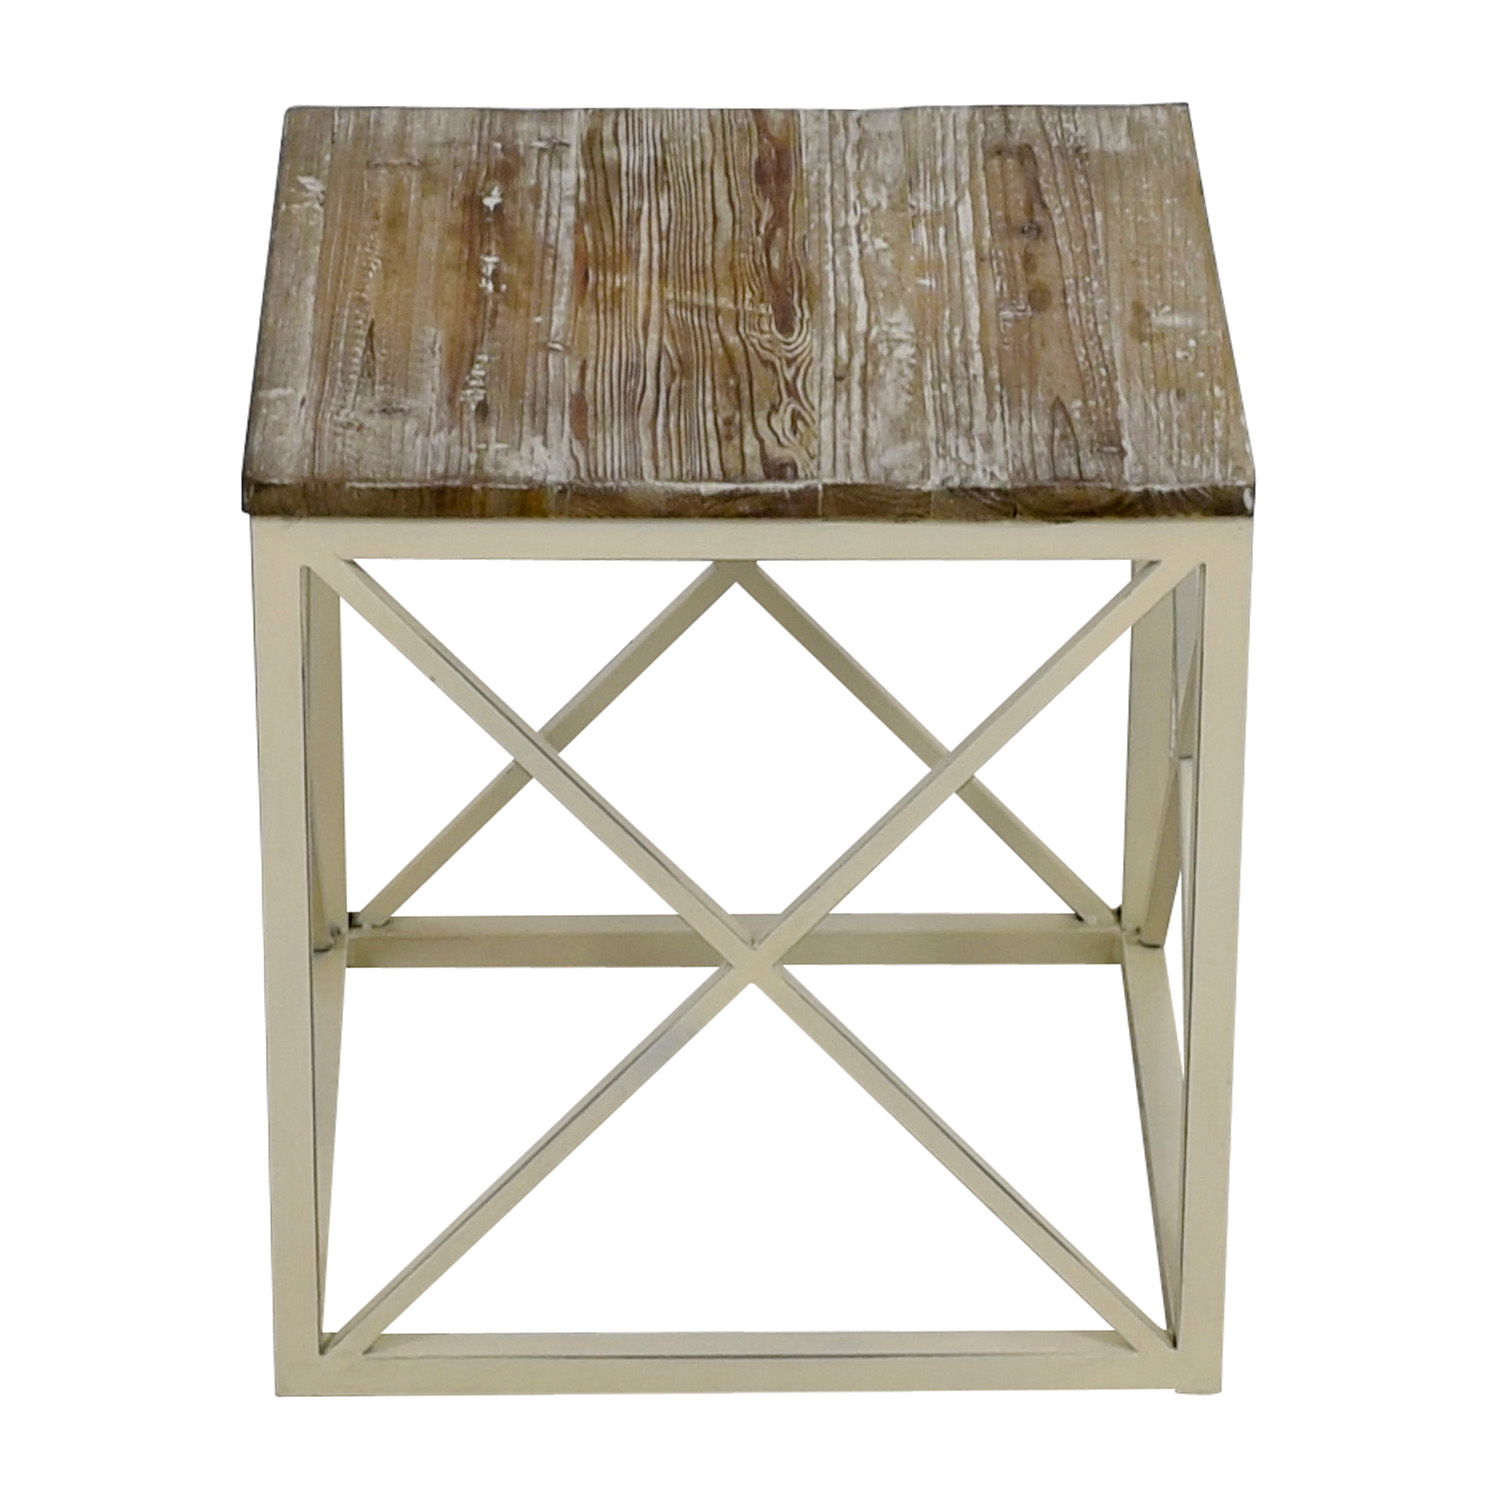 Wayfair Wayfair Wooden and Metal Side Table second hand